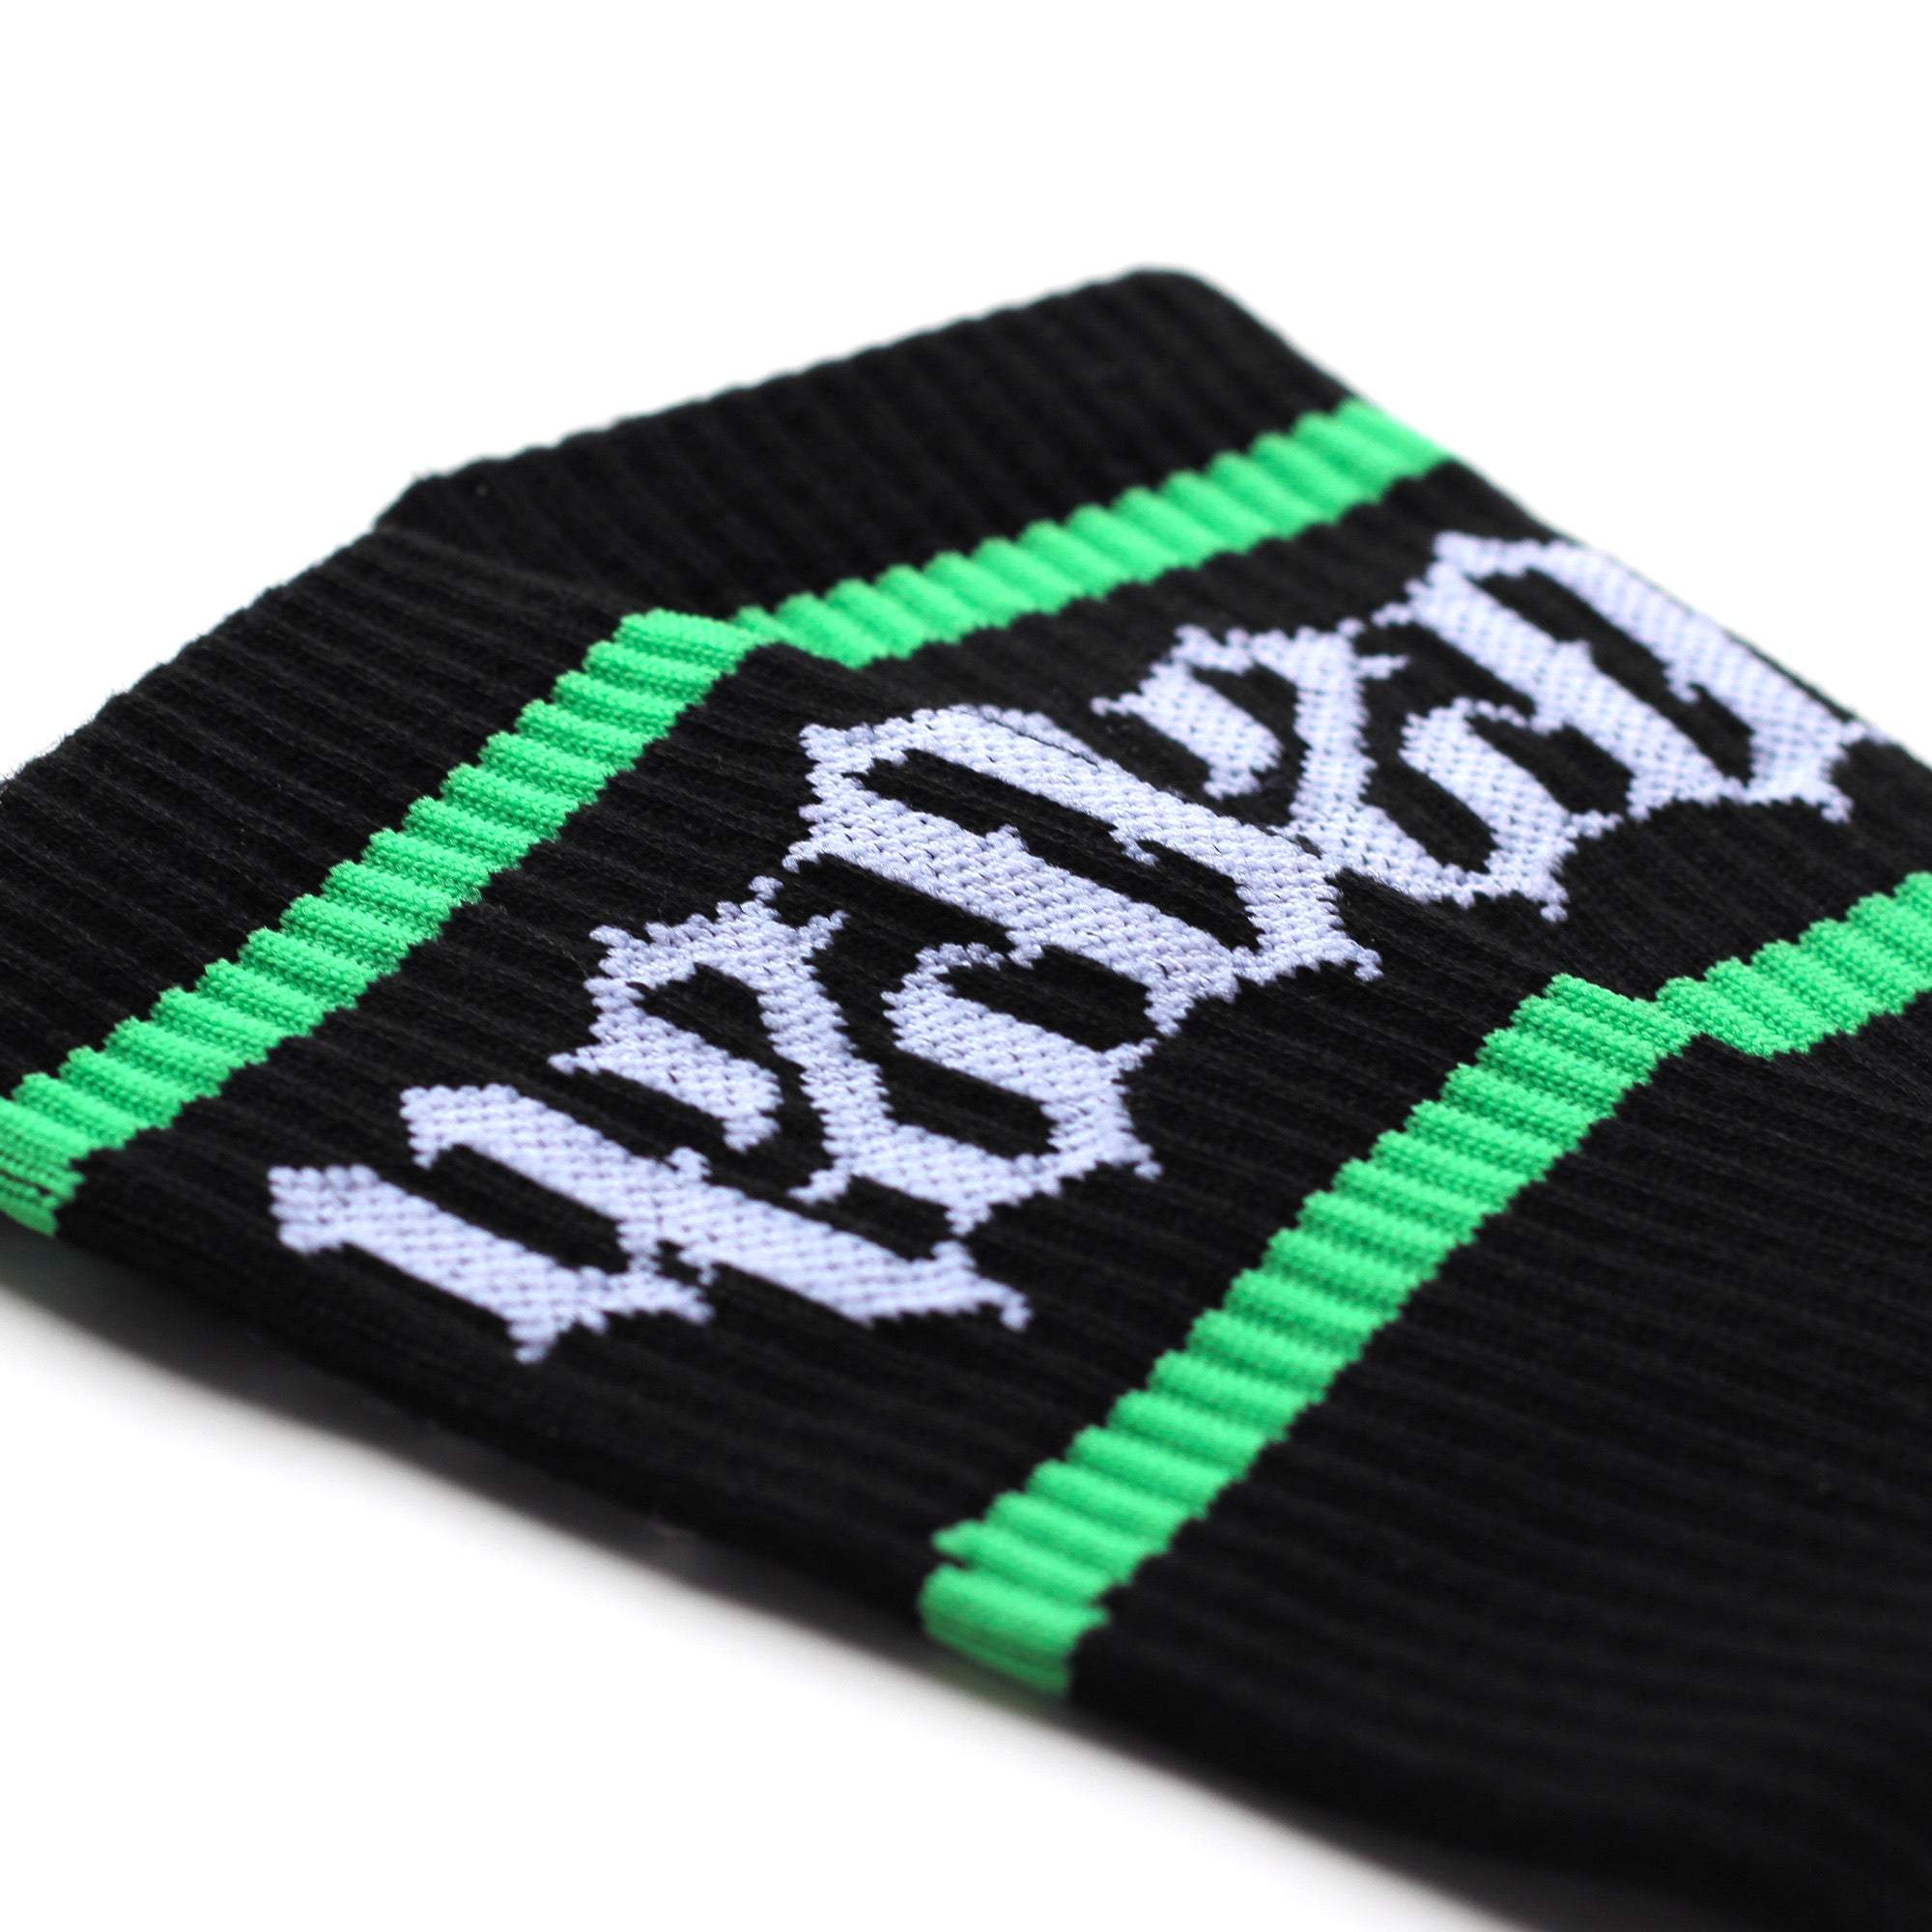 OG x Eighty6 Clothing 420 Hemp Socks - Limited Edition - Black